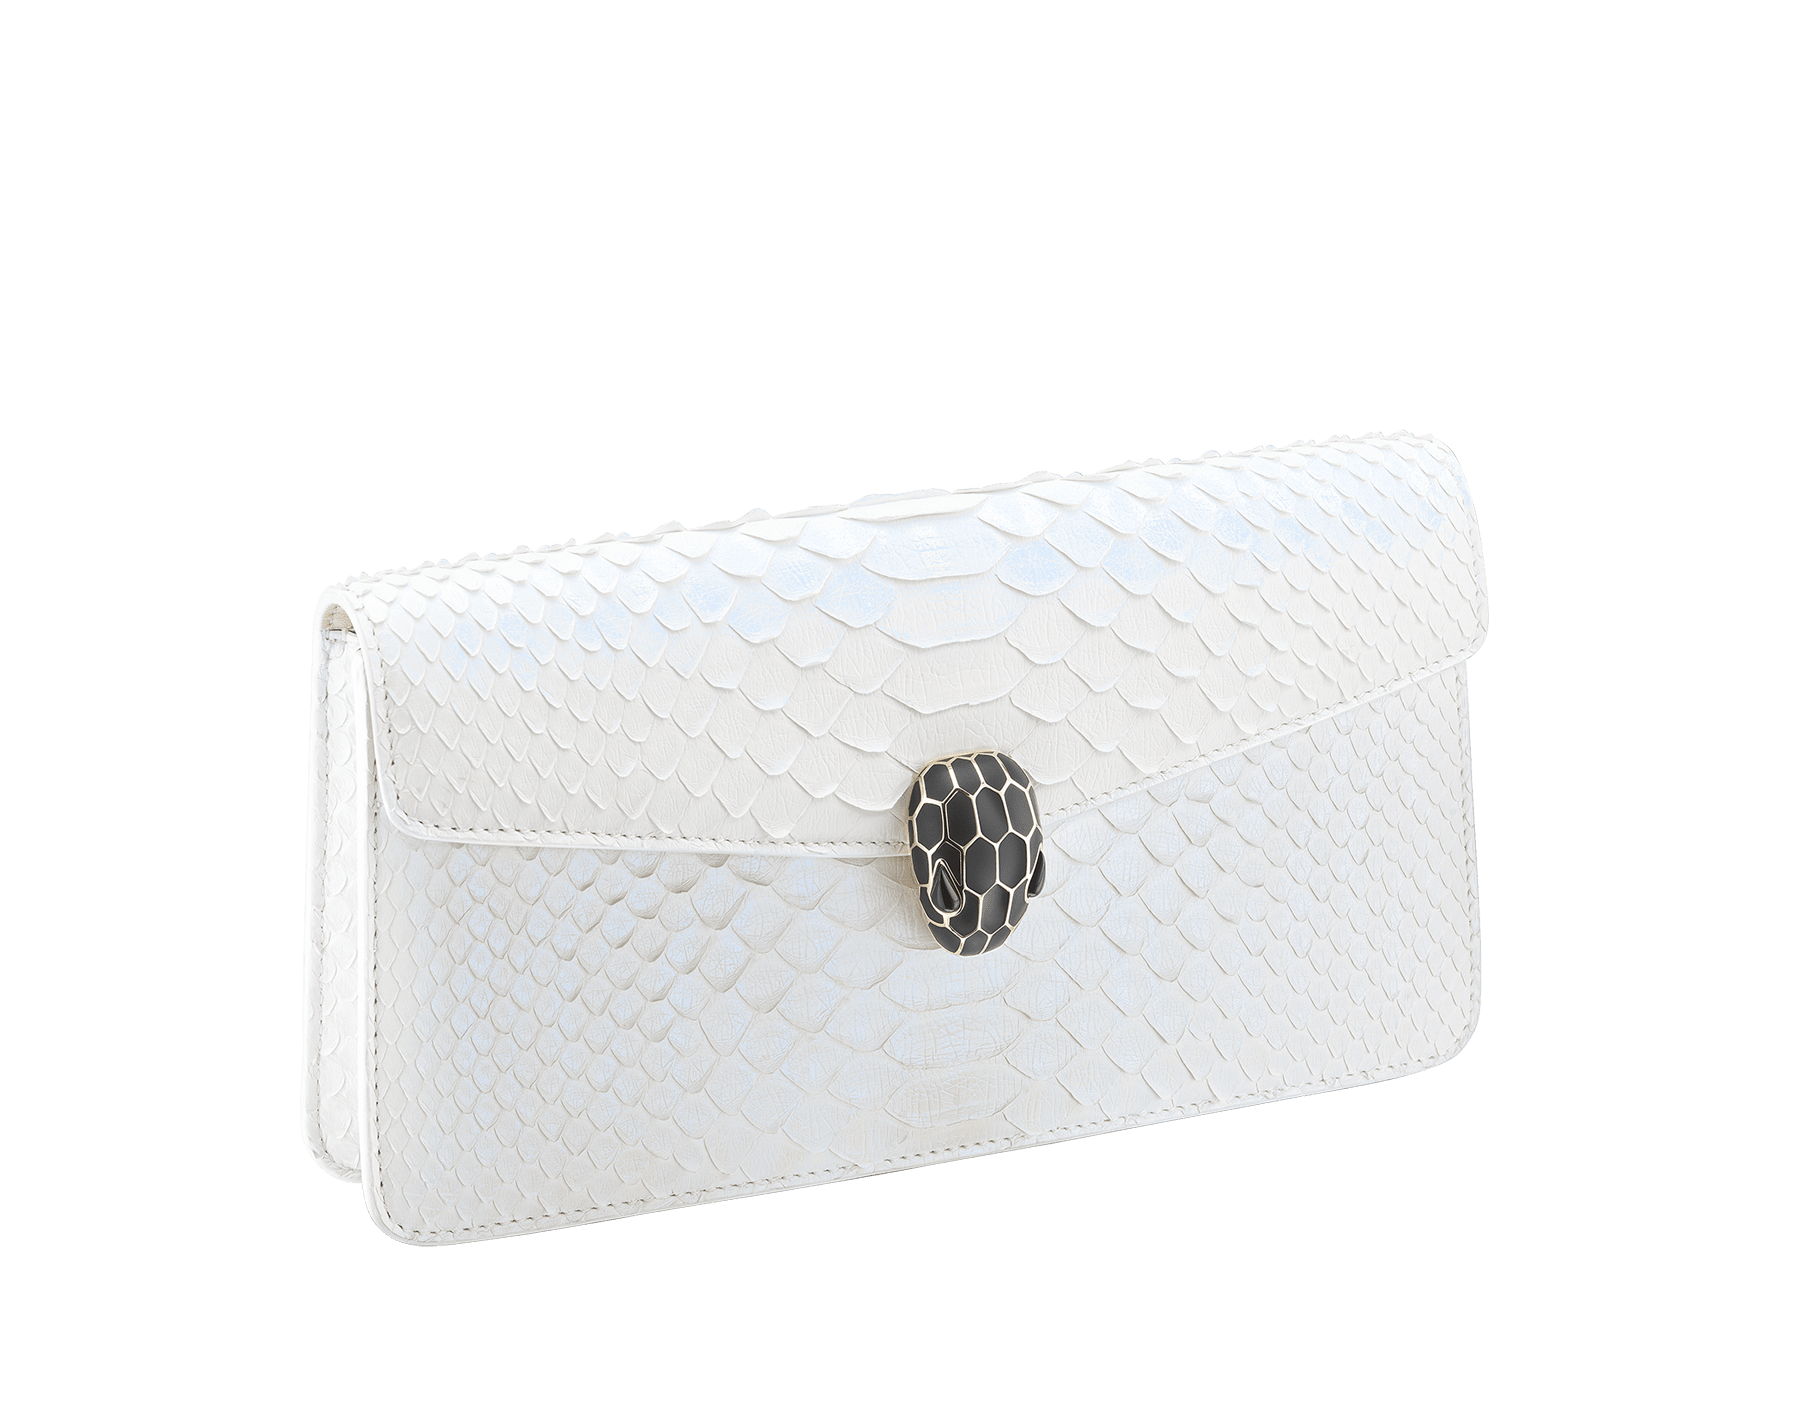 """""""Serpenti Forever"""" shoulder bag in white agate python skin with an iridescent finishing. Iconic snake head closure in light gold plated brass enriched with matte black and shiny white agate enamel and black onyx eyes. 289774 image 2"""